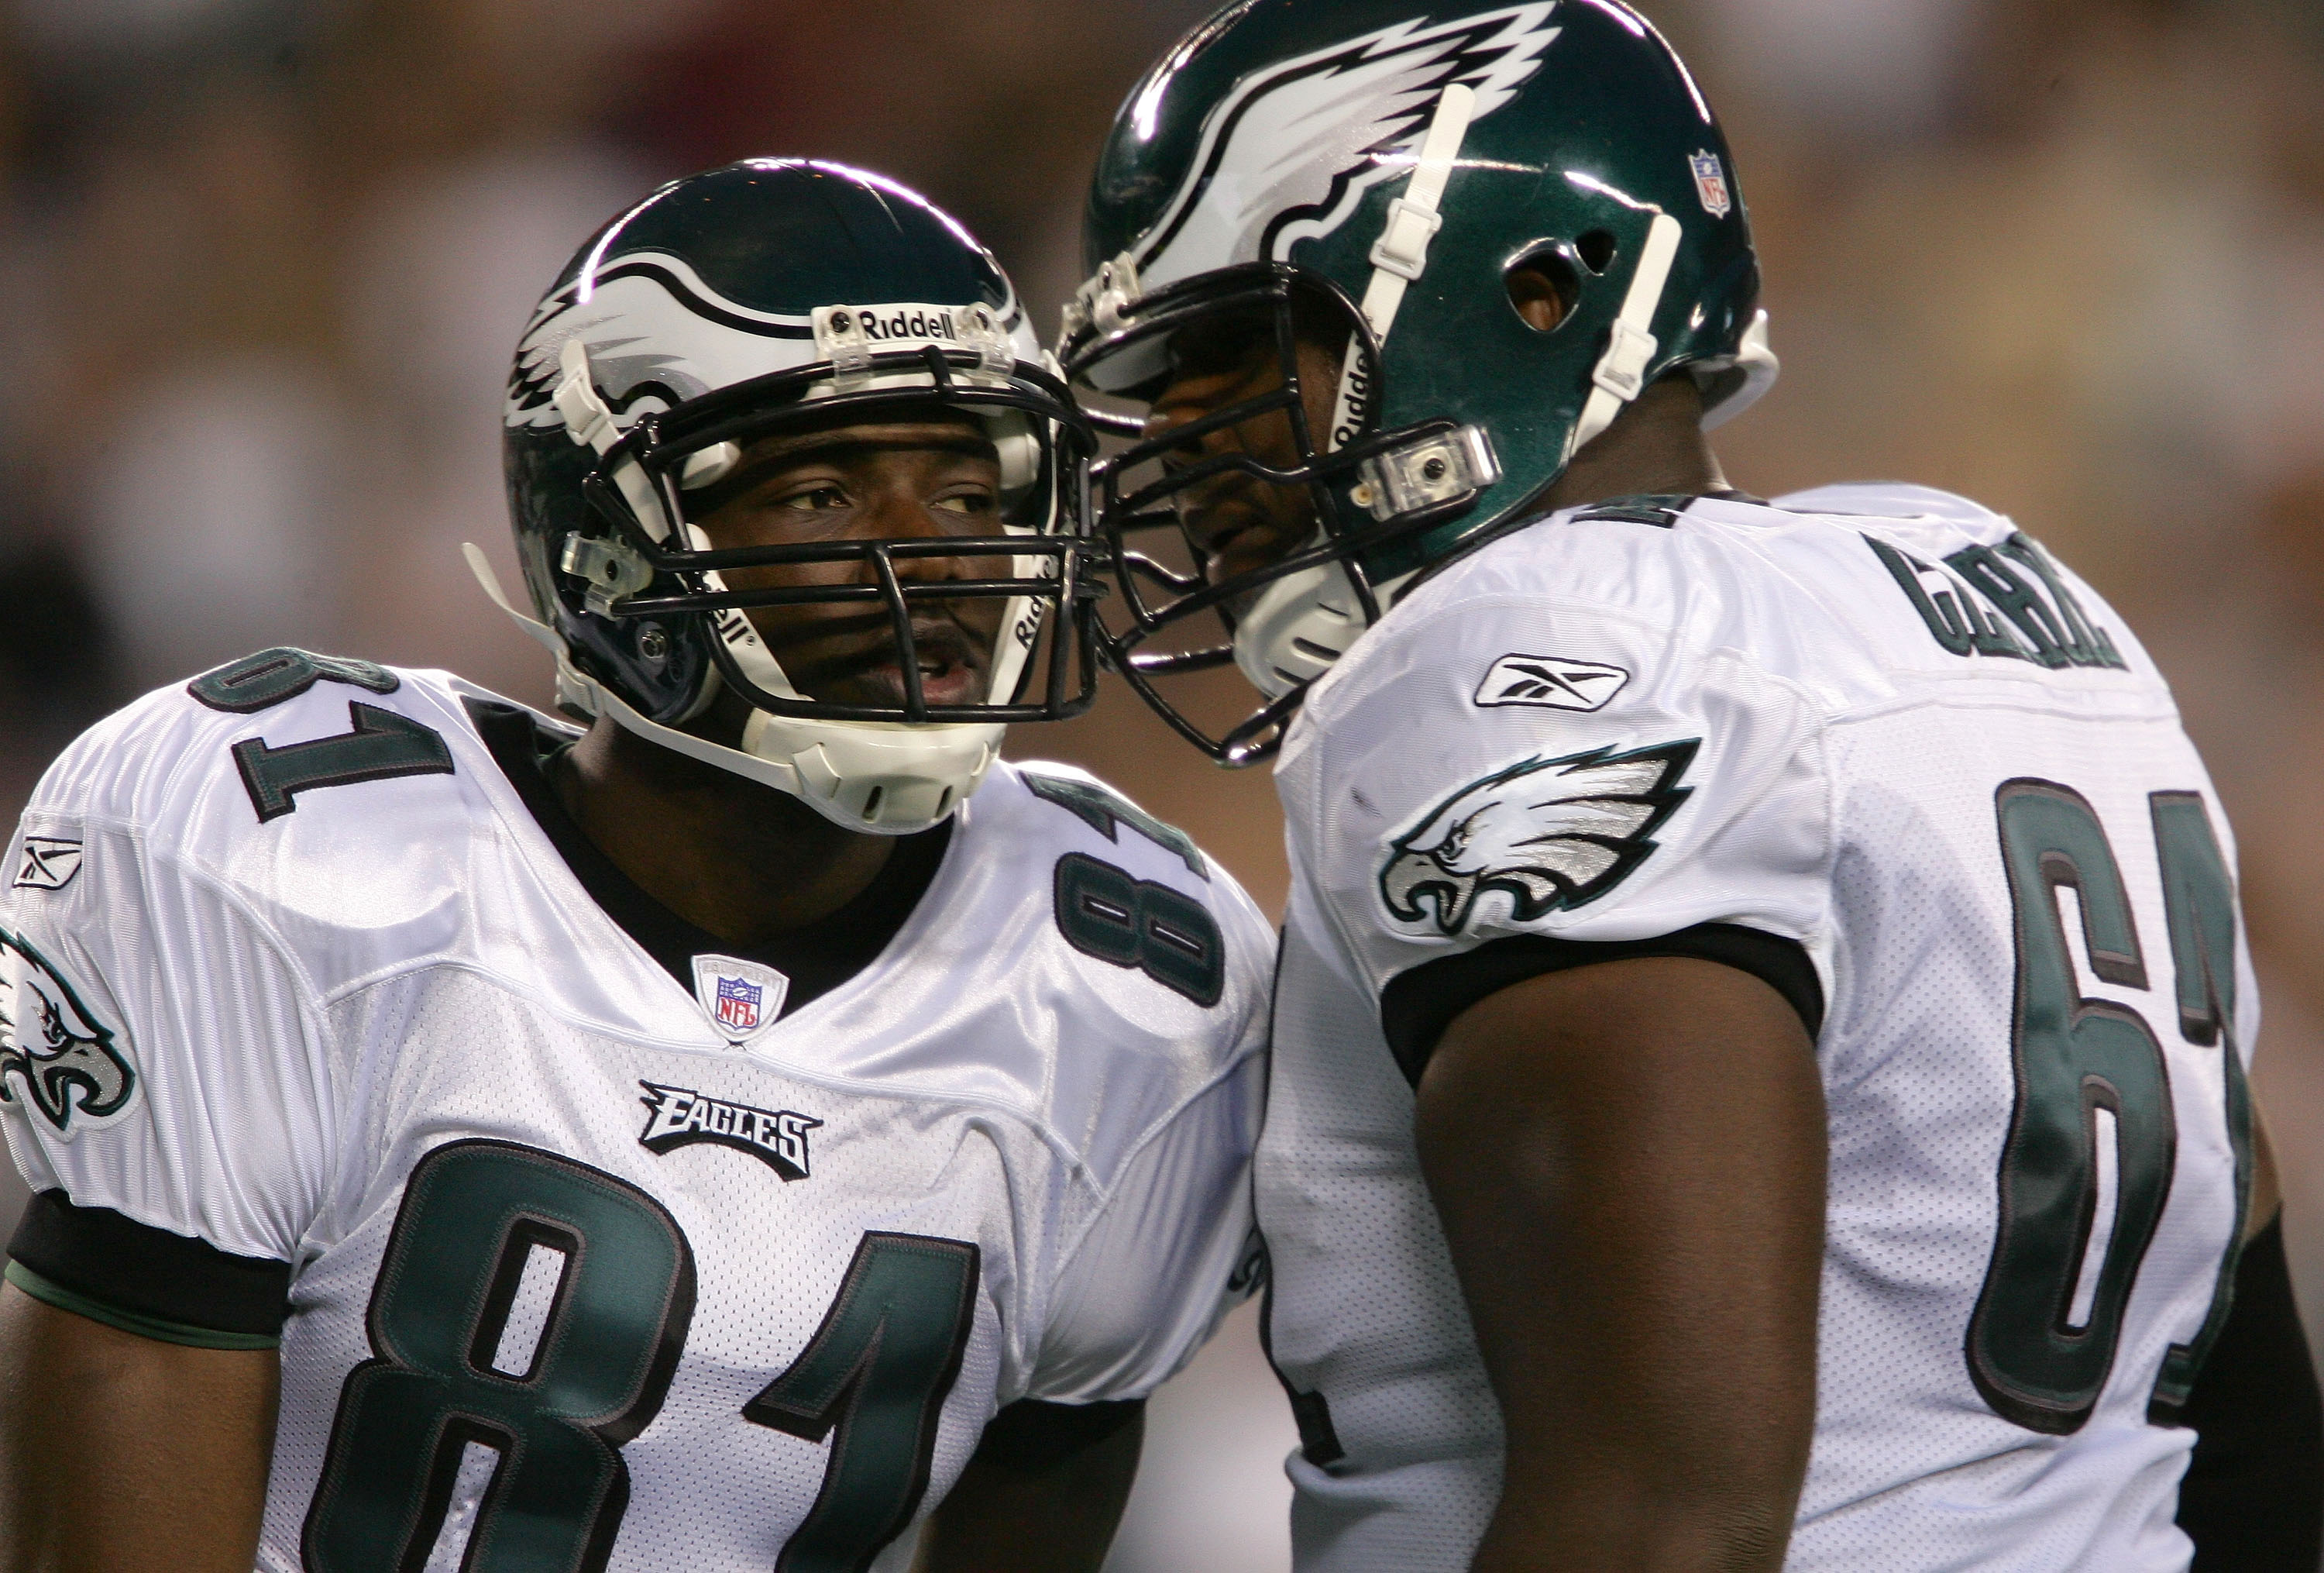 PHILADELPHIA - AUGUST 26:  Wide receiver Terrell Owens #81 of the Philadelphia Eagles celebrates his 64 yard touchdown reception on the first play of the game against the Cincinnati Bengals with teammate Adrien Clarke #61 in the first quarter of their pre